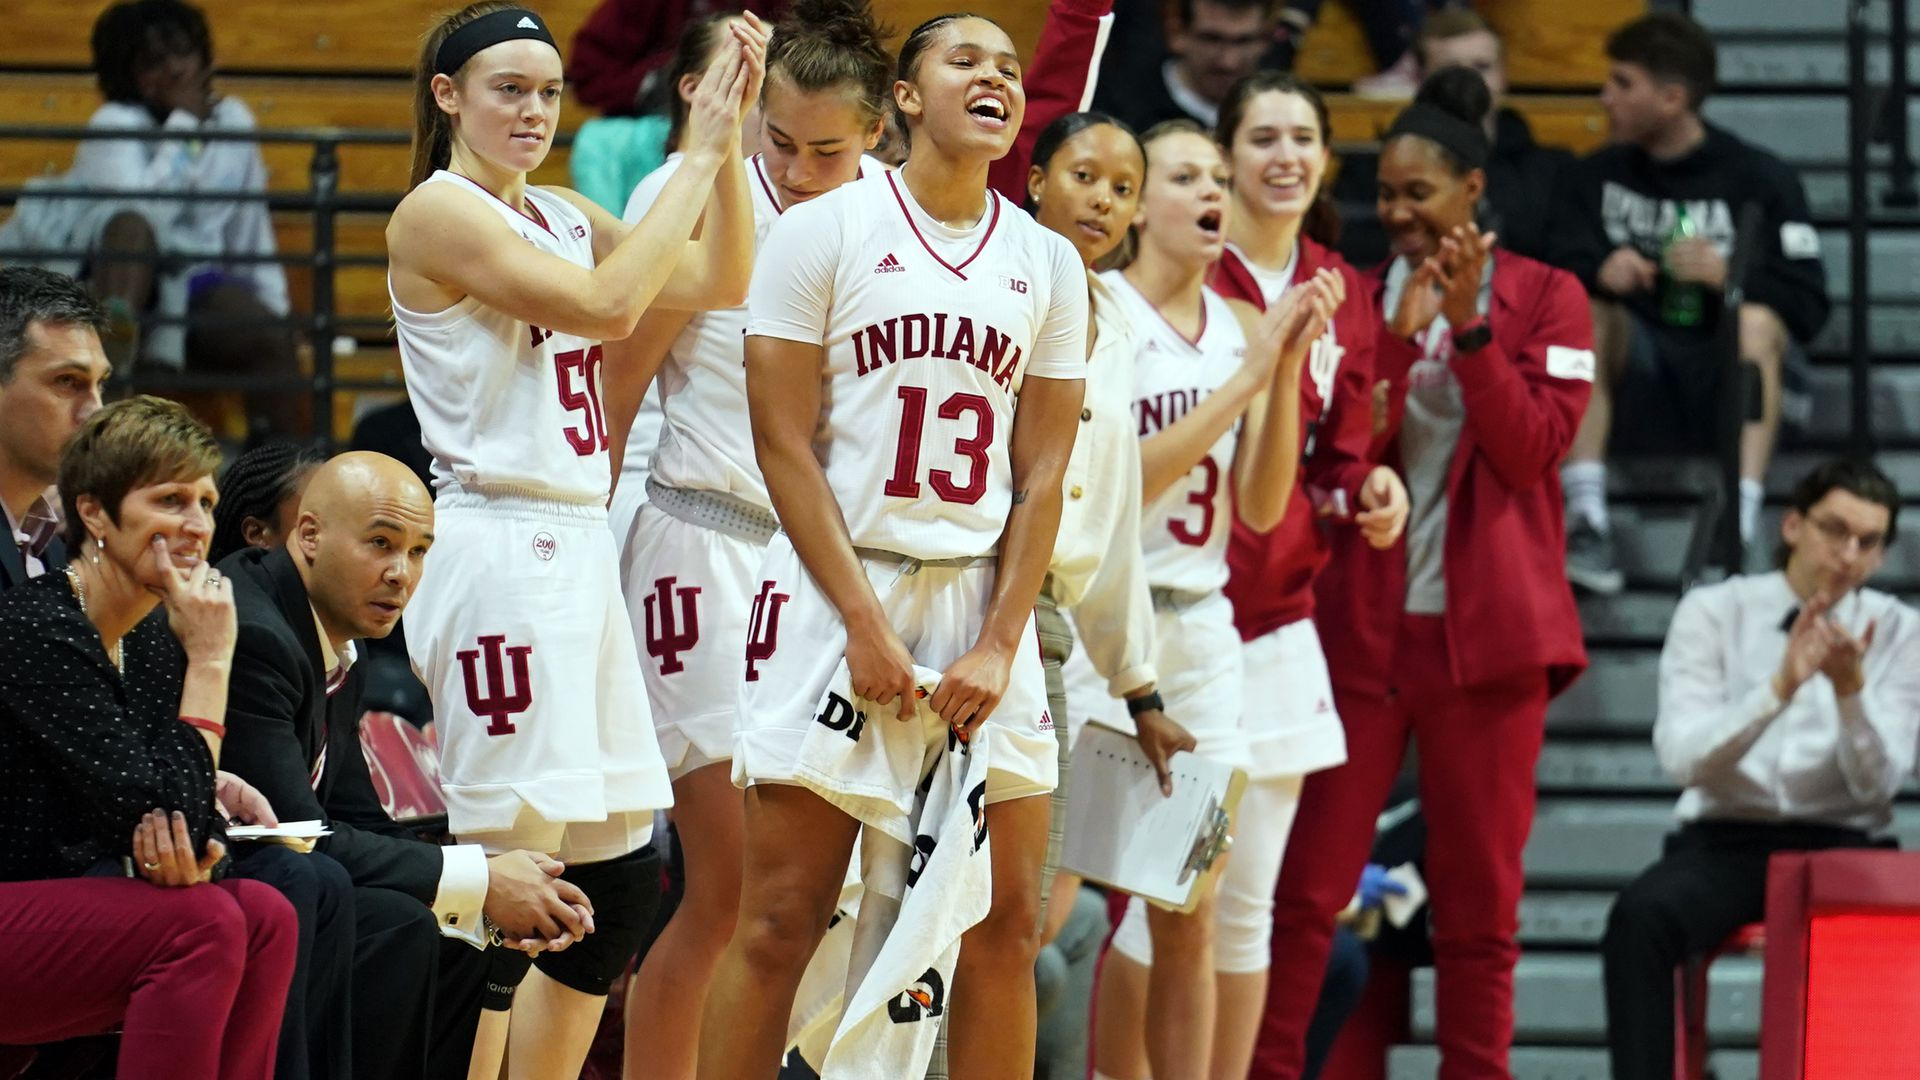 The Indiana Hoosiers celebrate after the NCAA Women's College Basketball game